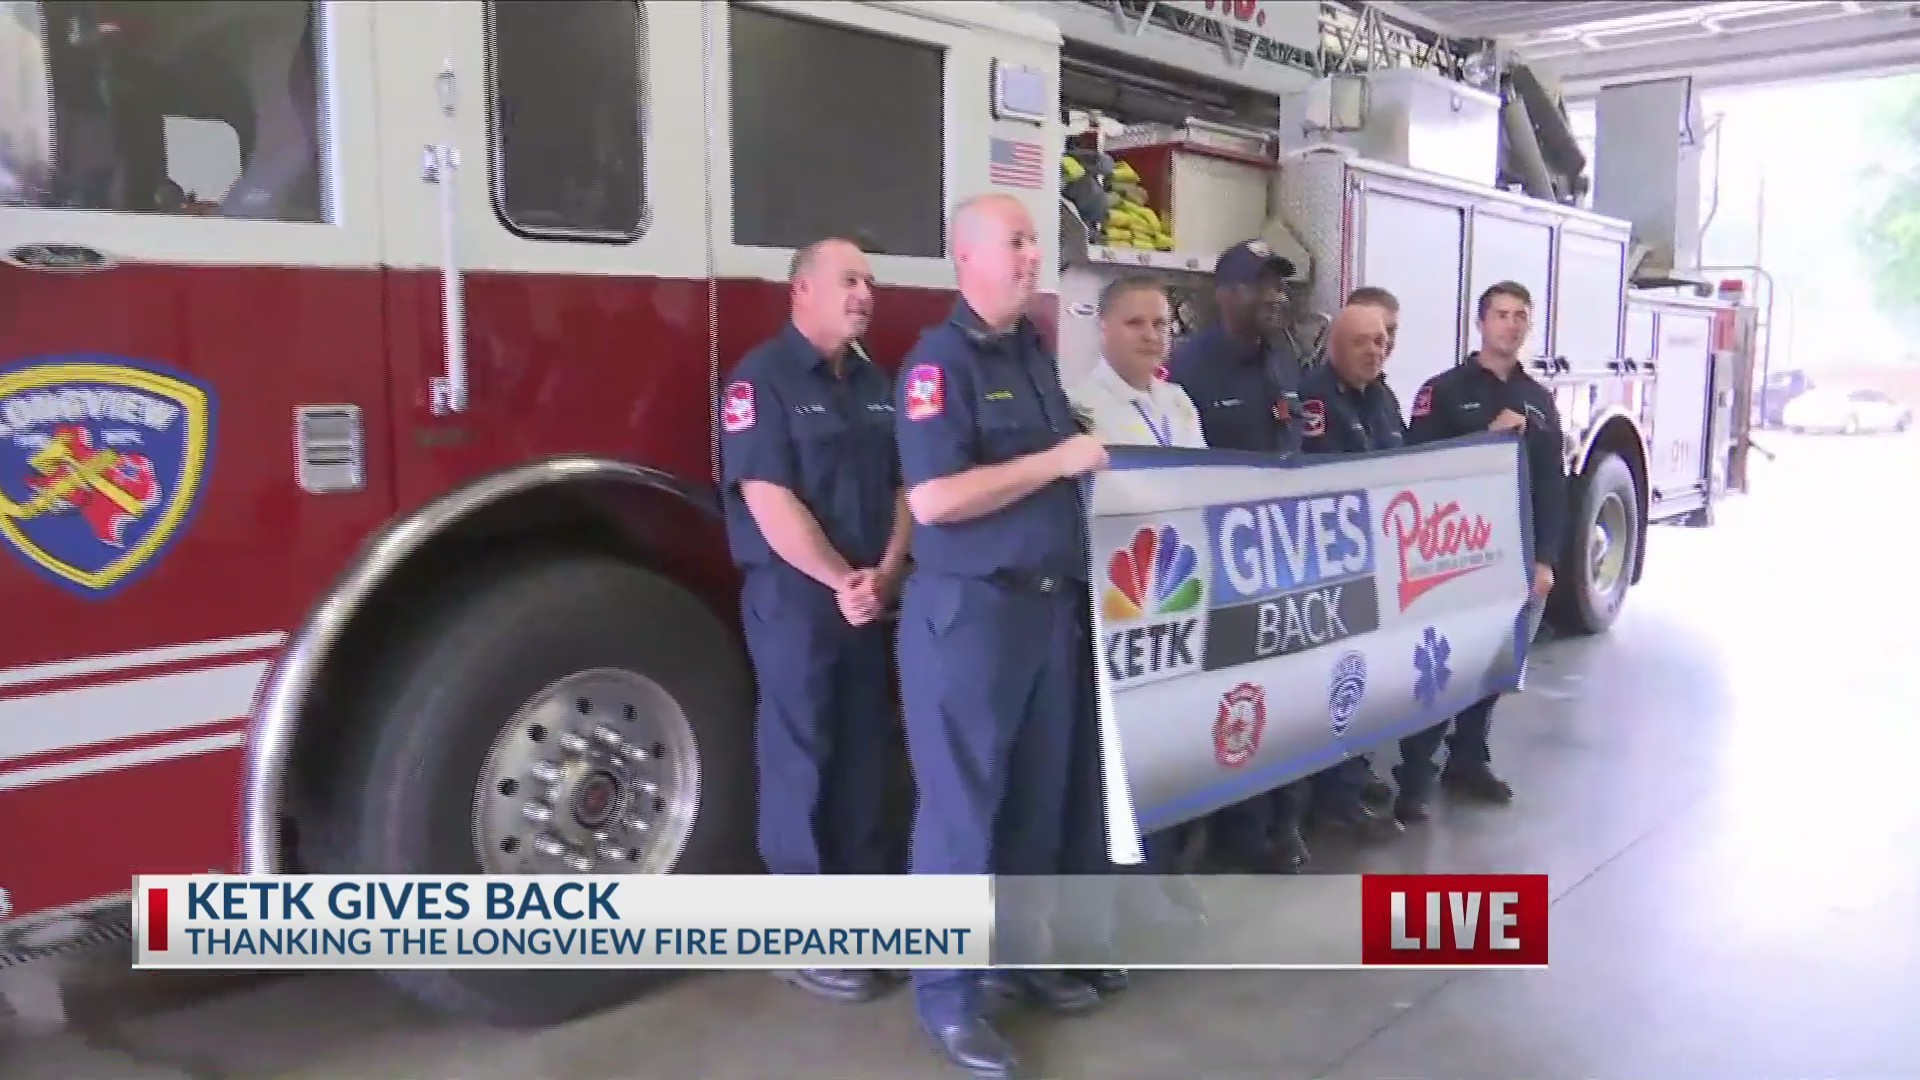 KETK Gives Back to the Longview Fire Department